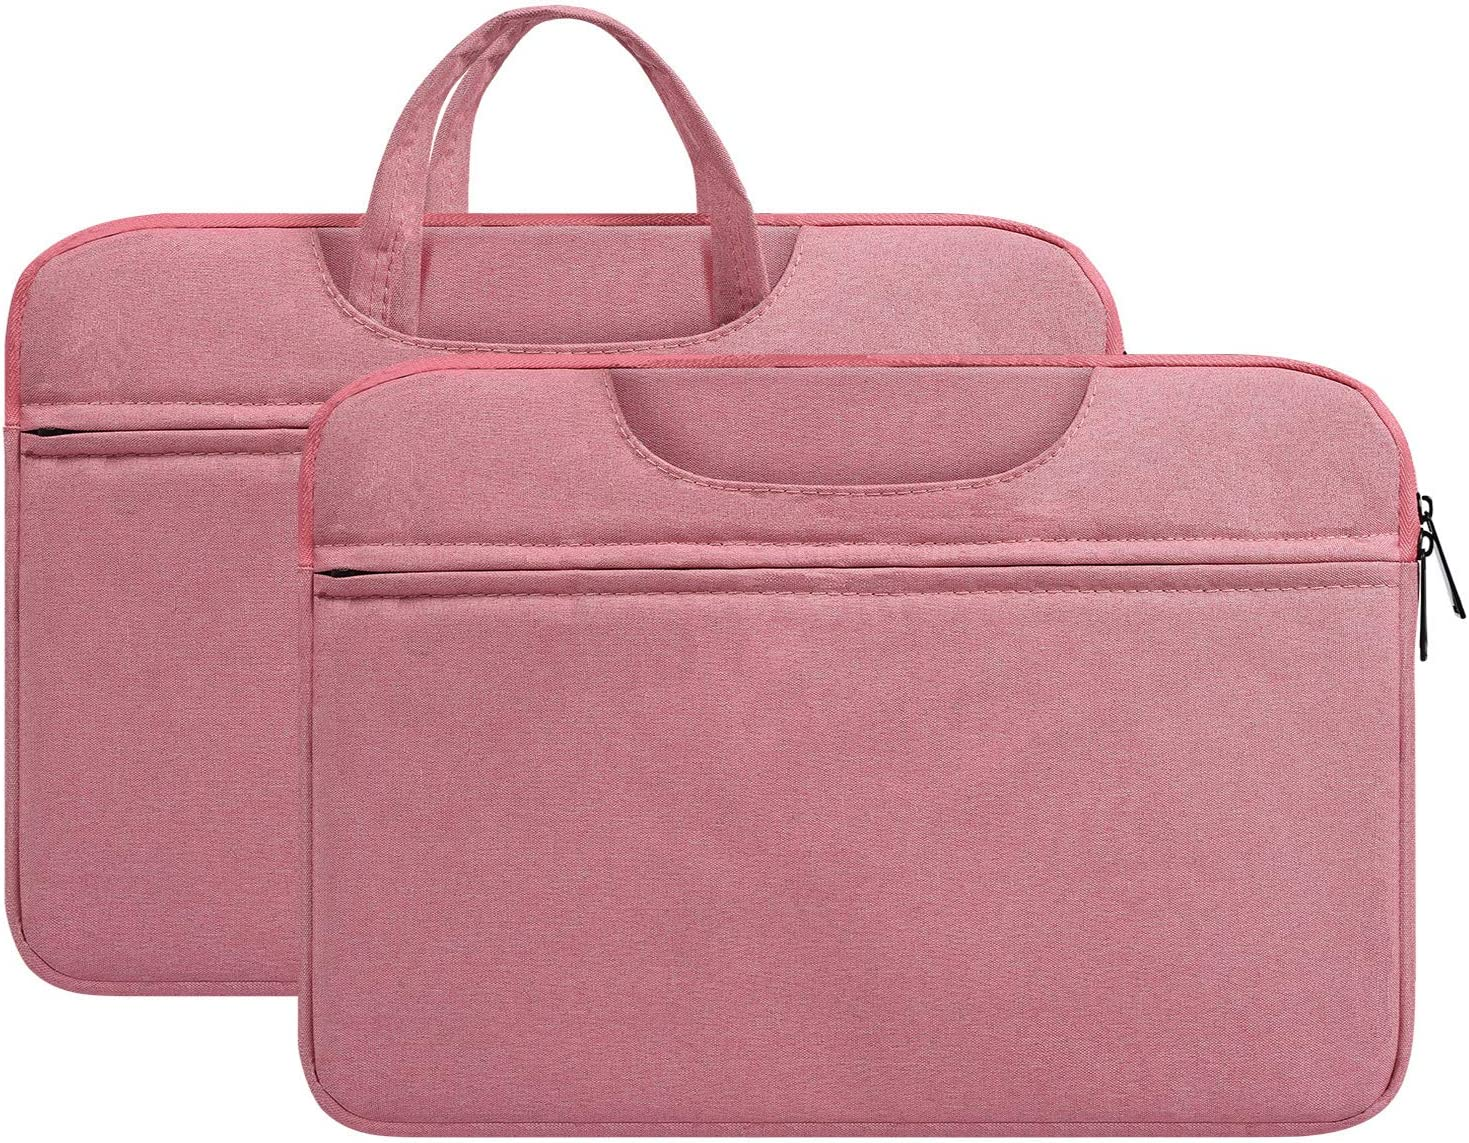 15.6 inch Laptop Case Sleeve for HP Envy X360/HP Spectre X360 15.6